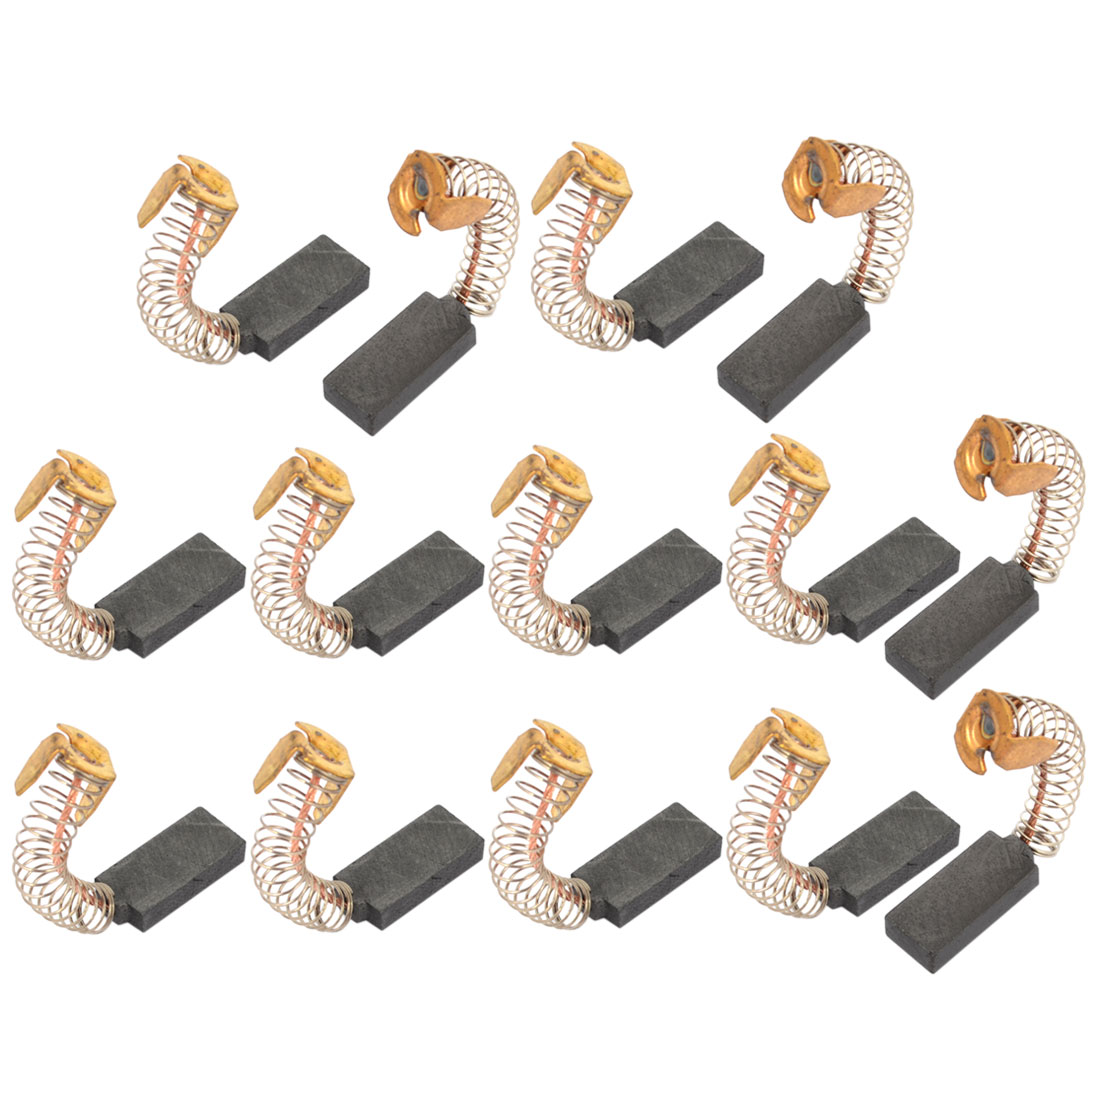 14 Pcs 17mm x 8mm x 4mm Electric Motor Carbon Brushes for Power Tool